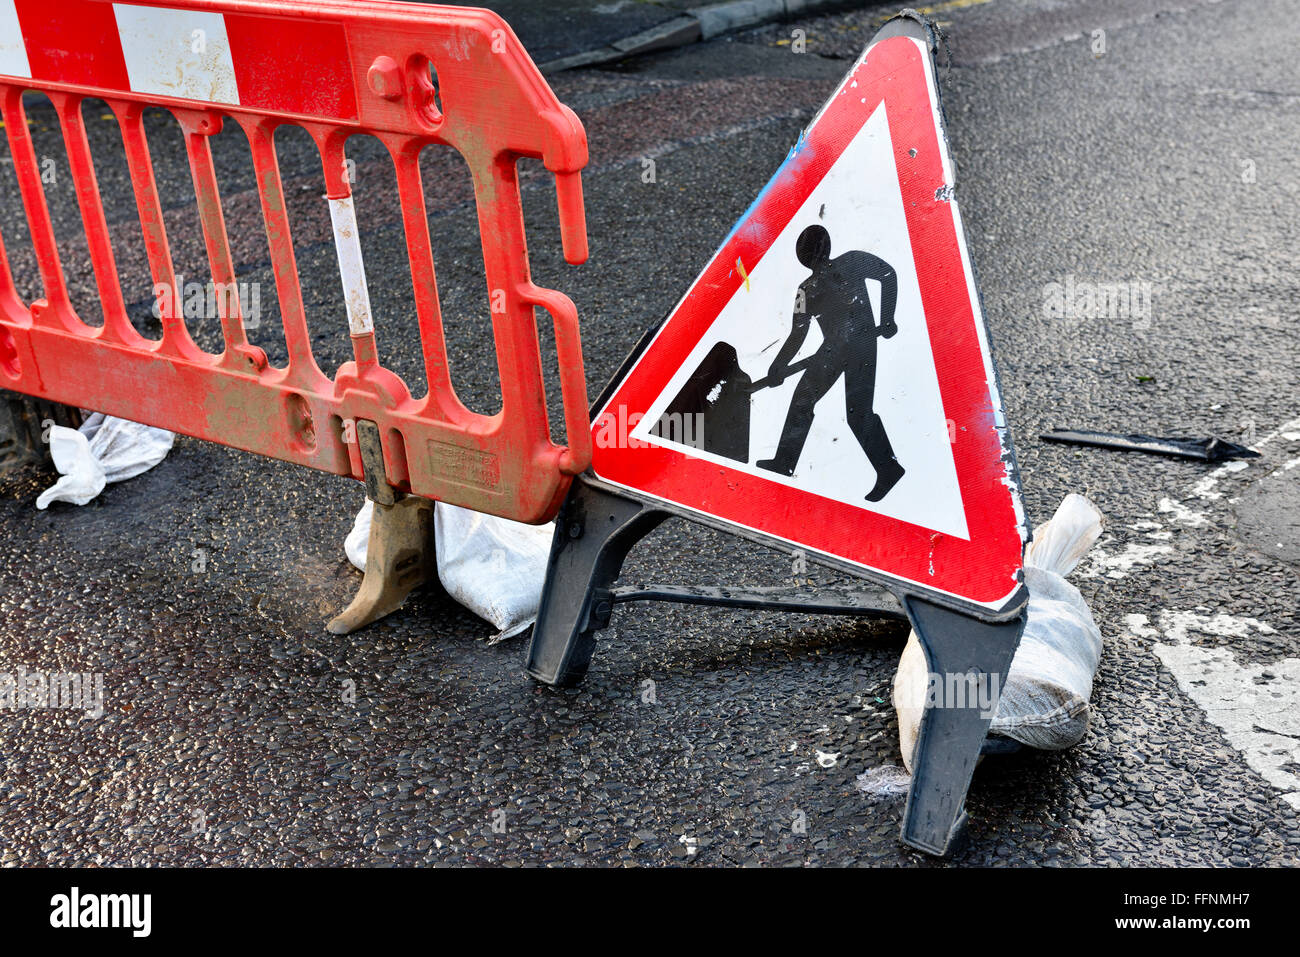 Sign men working and barrier across road - Stock Image